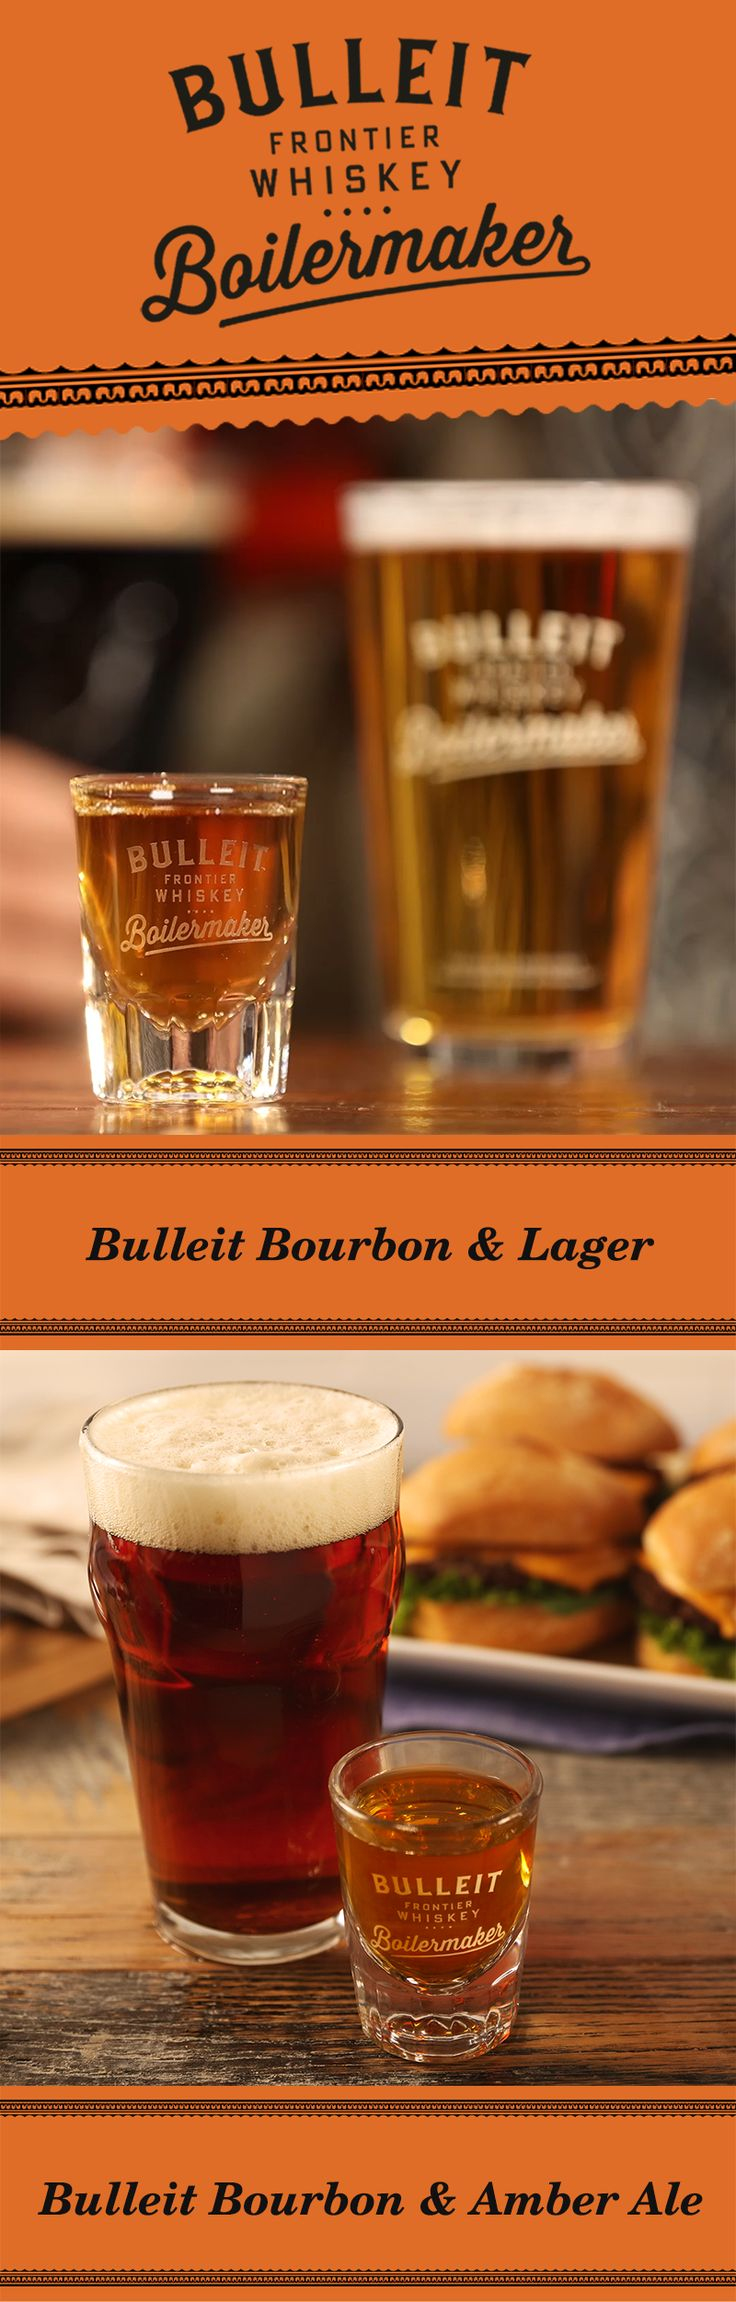 Whether on the football field, at a viewing party, or at the bar, it takes two teams to make a classic. So when it's time for a drink, go for the Bulleit Boilermaker by pairing a beer and a shot.  The recipe is easy. Simply pour 1.3 oz Bulleit Bourbon and pair it with your favorite 12 oz beer—including a lager or amber ale. To best experience this two-drink serve, alternate between sipping Bulleit and slowly drinking your beer to discover unique flavor profiles.